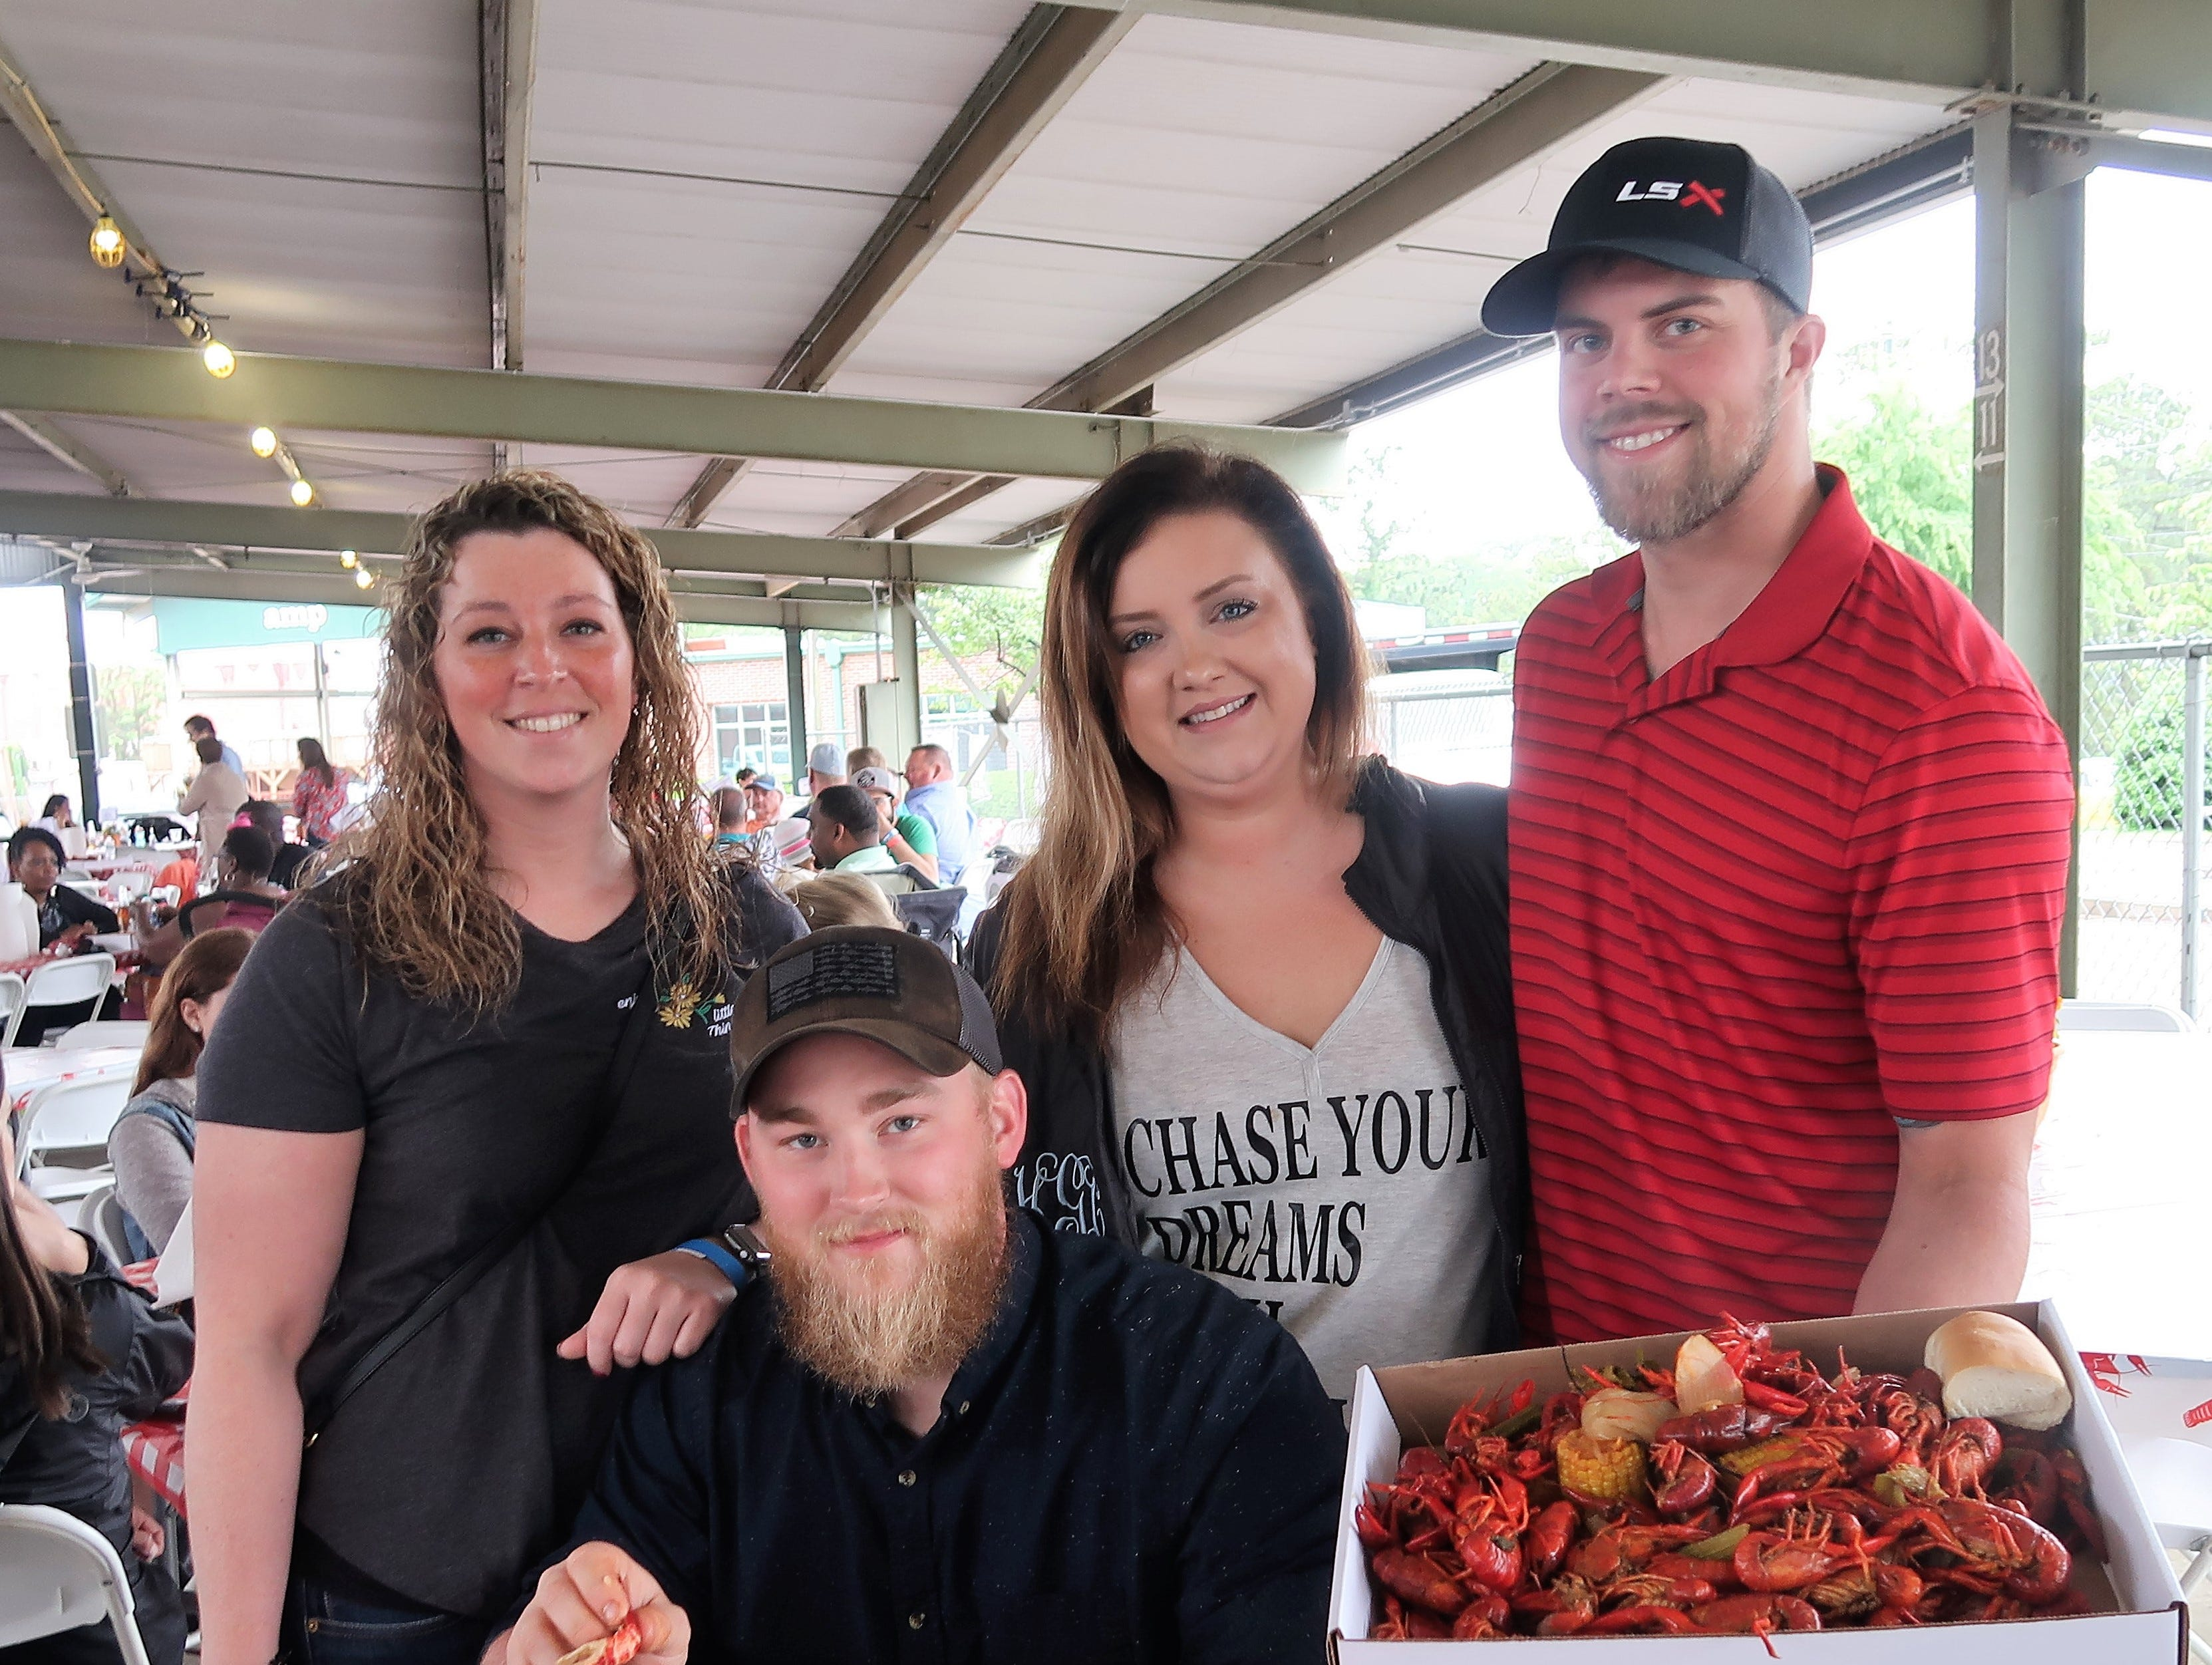 Shenise Cannasta, John Dodd, Heather G. and Jason Maitland display their boxes of crawfish at the Second Annual Crawfest fundraiser for the Scarlet Rope Project at the West Tennessee Farmer's Market in Jackson on May 4, 2019.